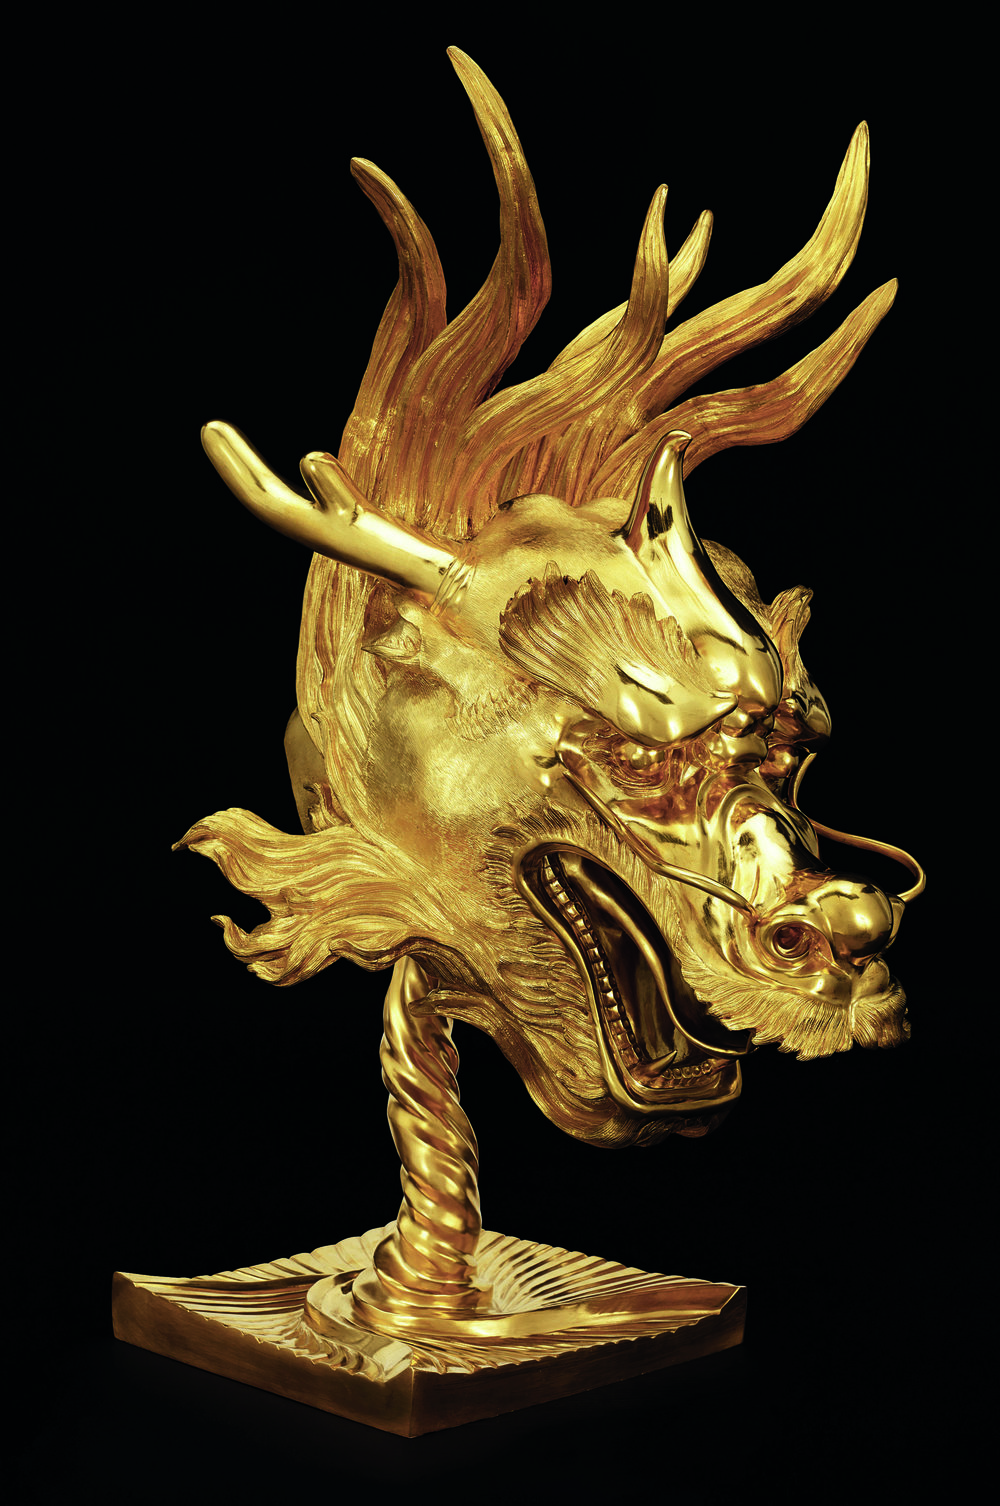 Dragon , Ai Weiwei, 2010 Bronze with gold patina Ai Weiwei: Circle of Animal/Zodiac Heads